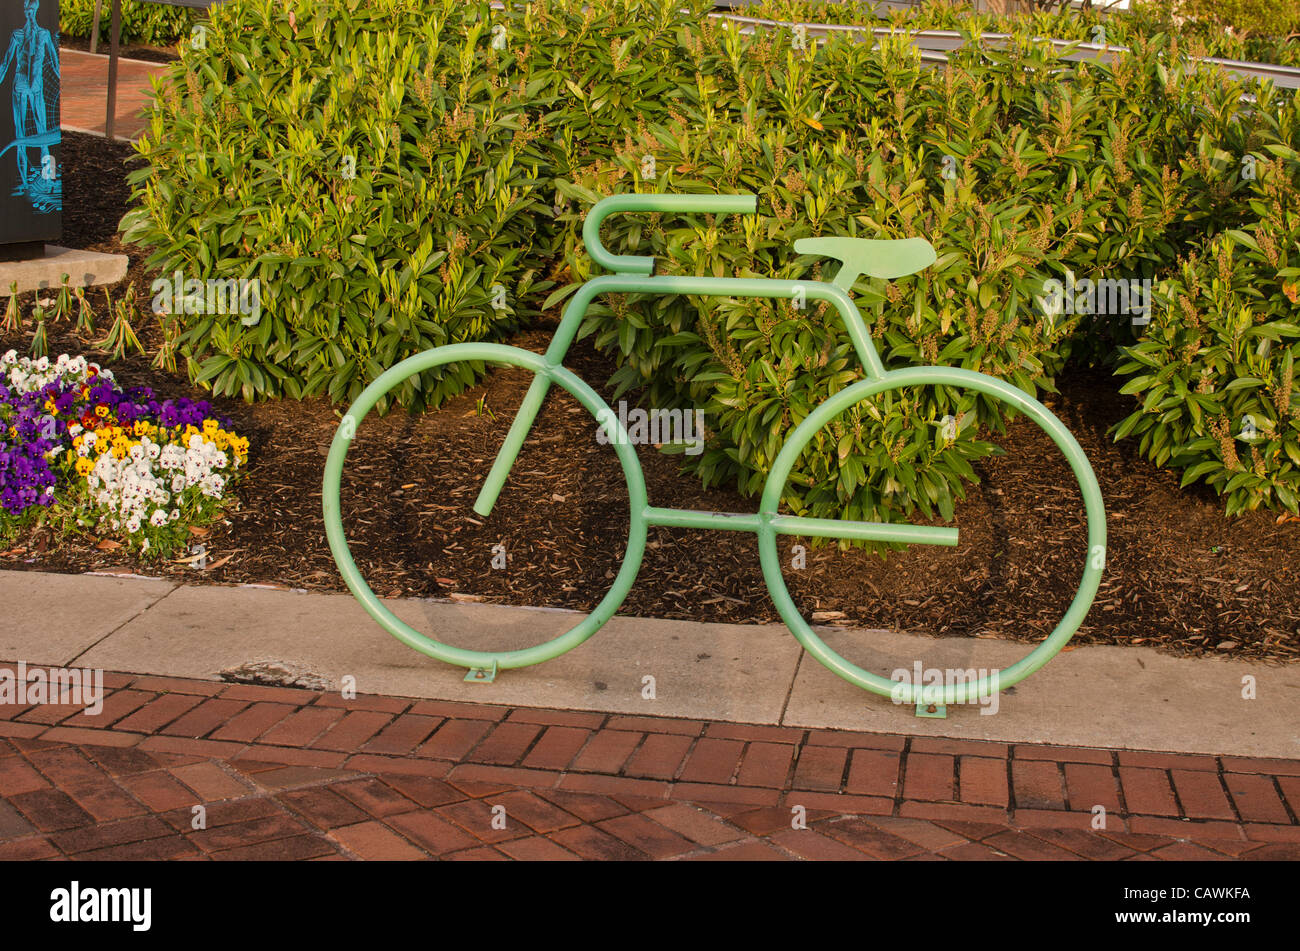 cleverly-designed-bike-rack-in-shape-of-a-bicycle-along-the-bike-jogging-CAWKFA.jpg